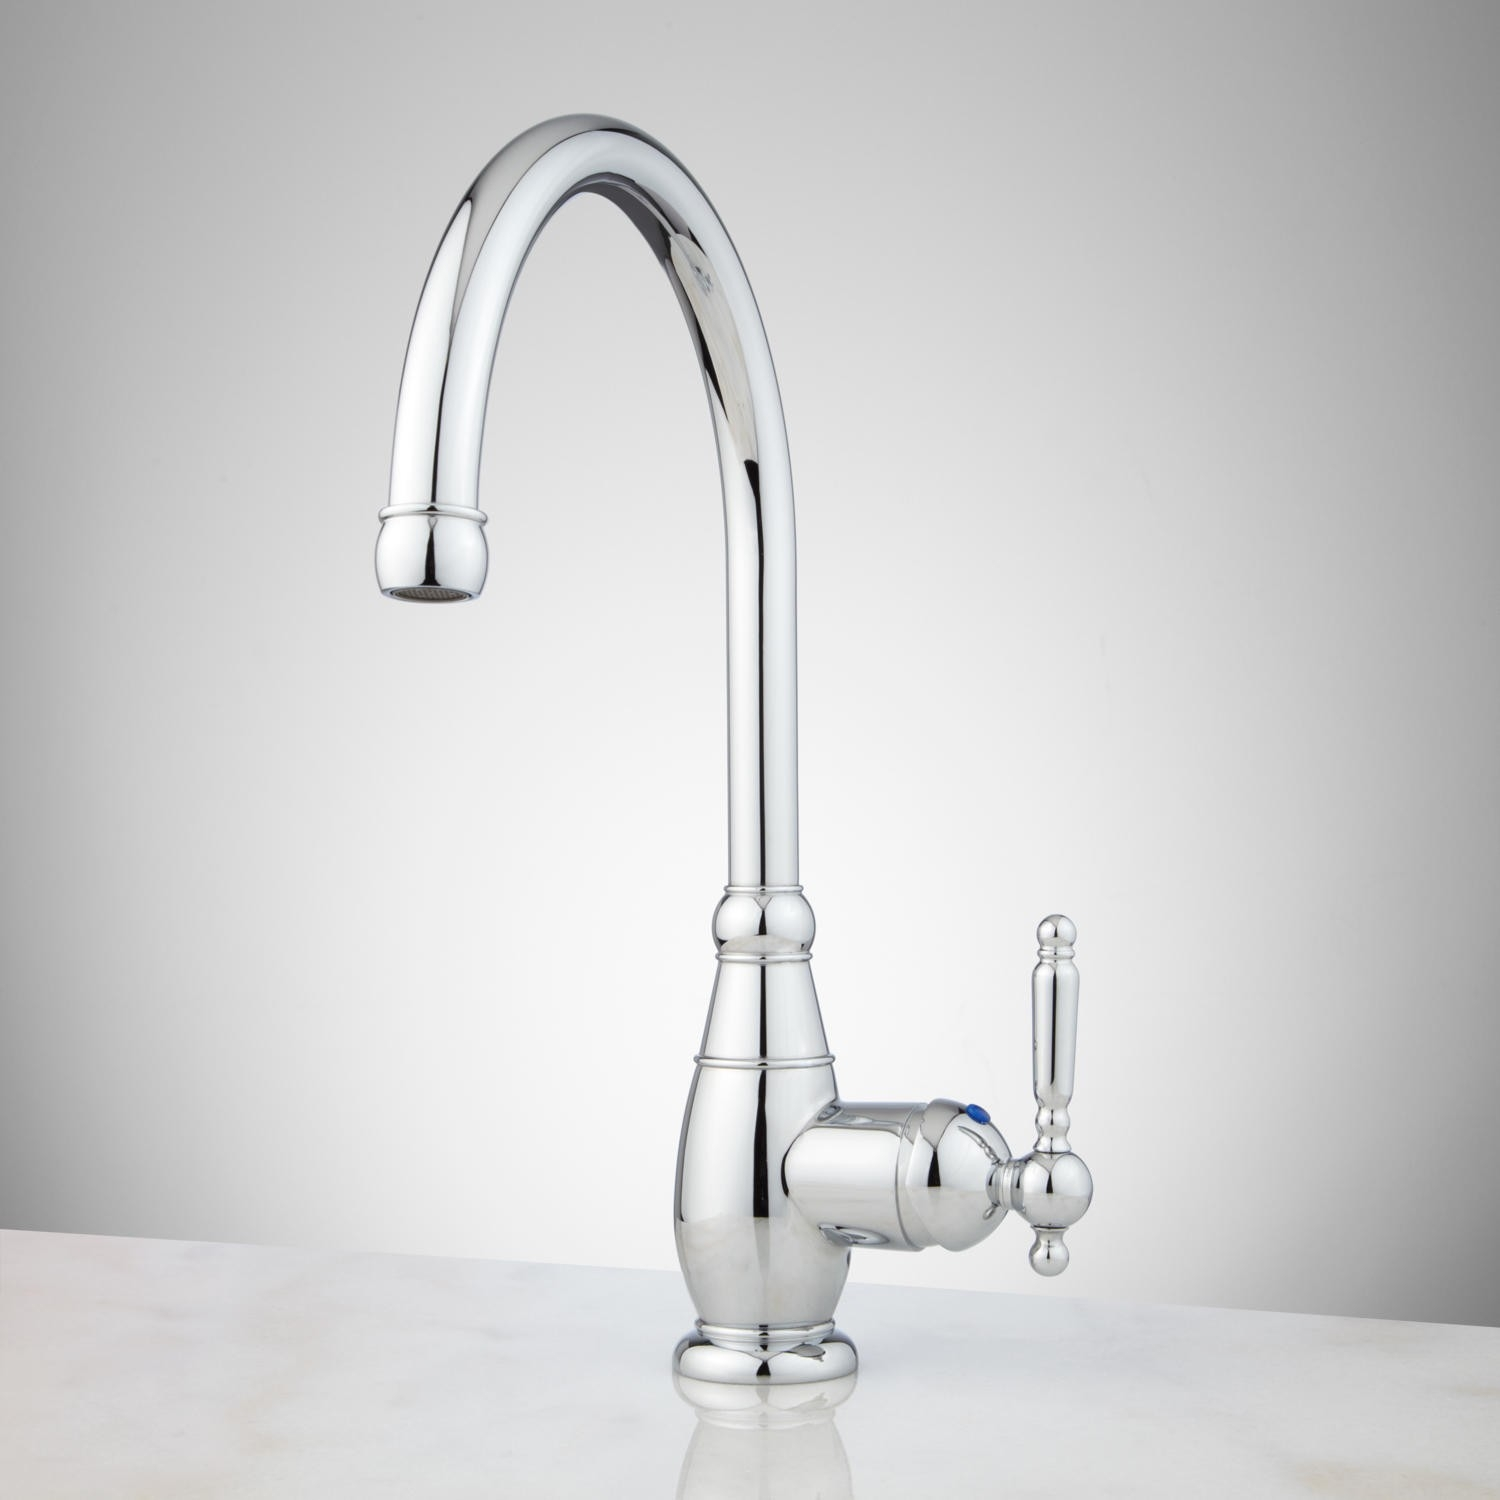 most popular kitchen faucets 2014 most popular kitchen faucets 2014 most popular kitchen faucets amp sinks top rated list 2014 1500 x 1500